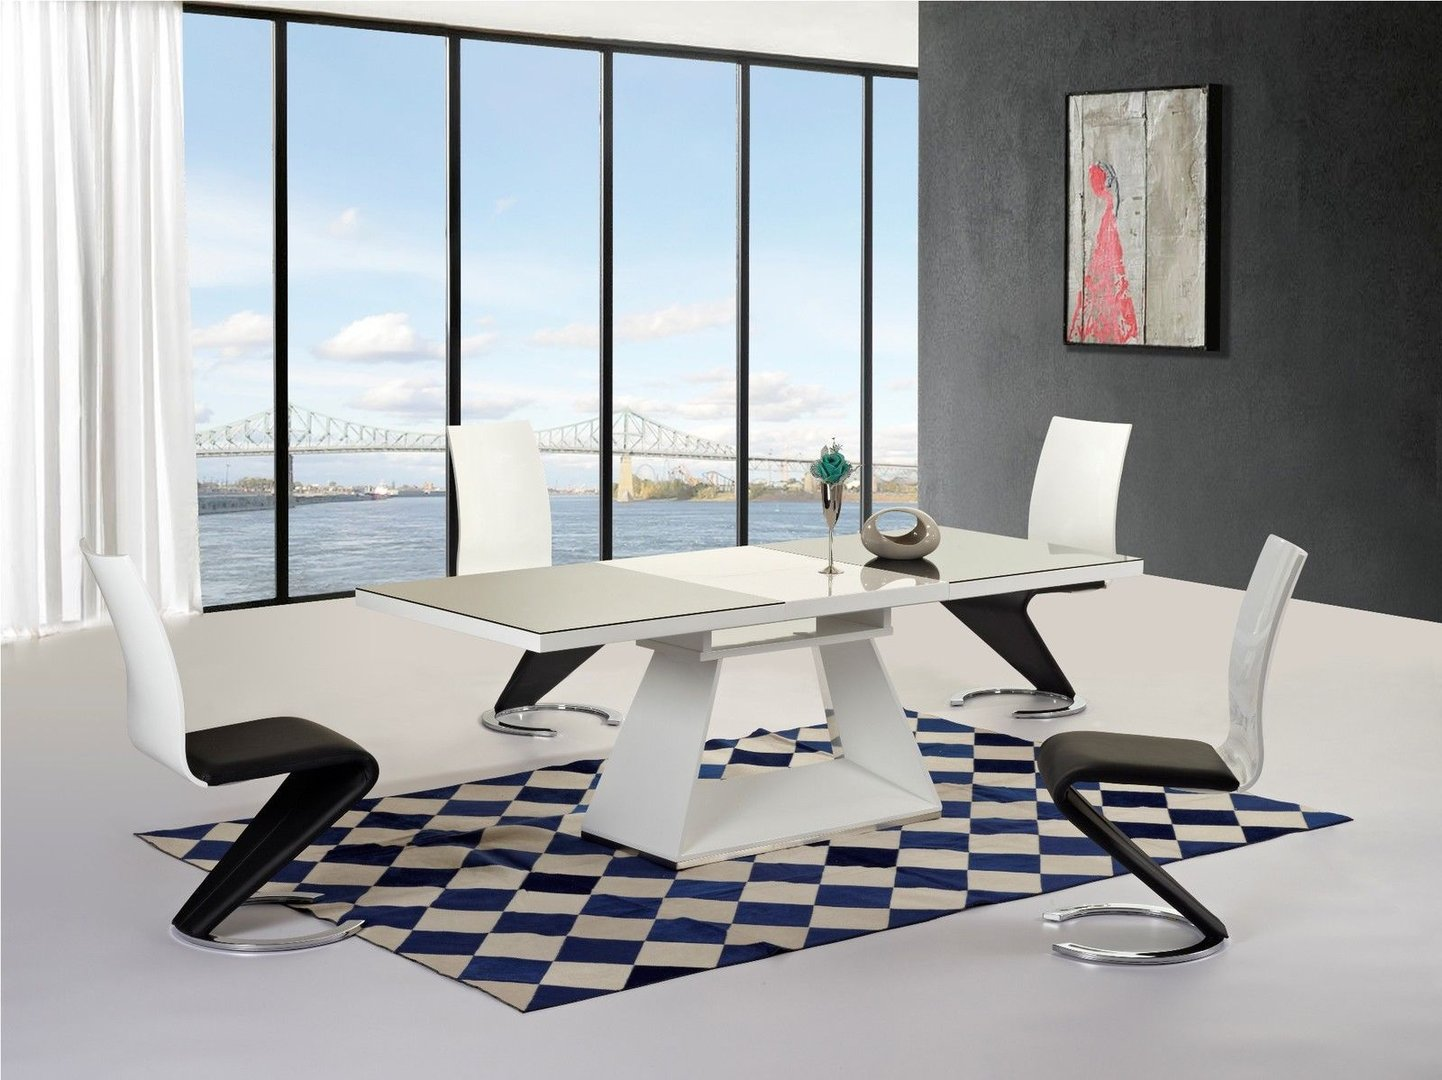 Black white high gloss glass extending dining table 6 chairs - White extending dining table and chairs ...